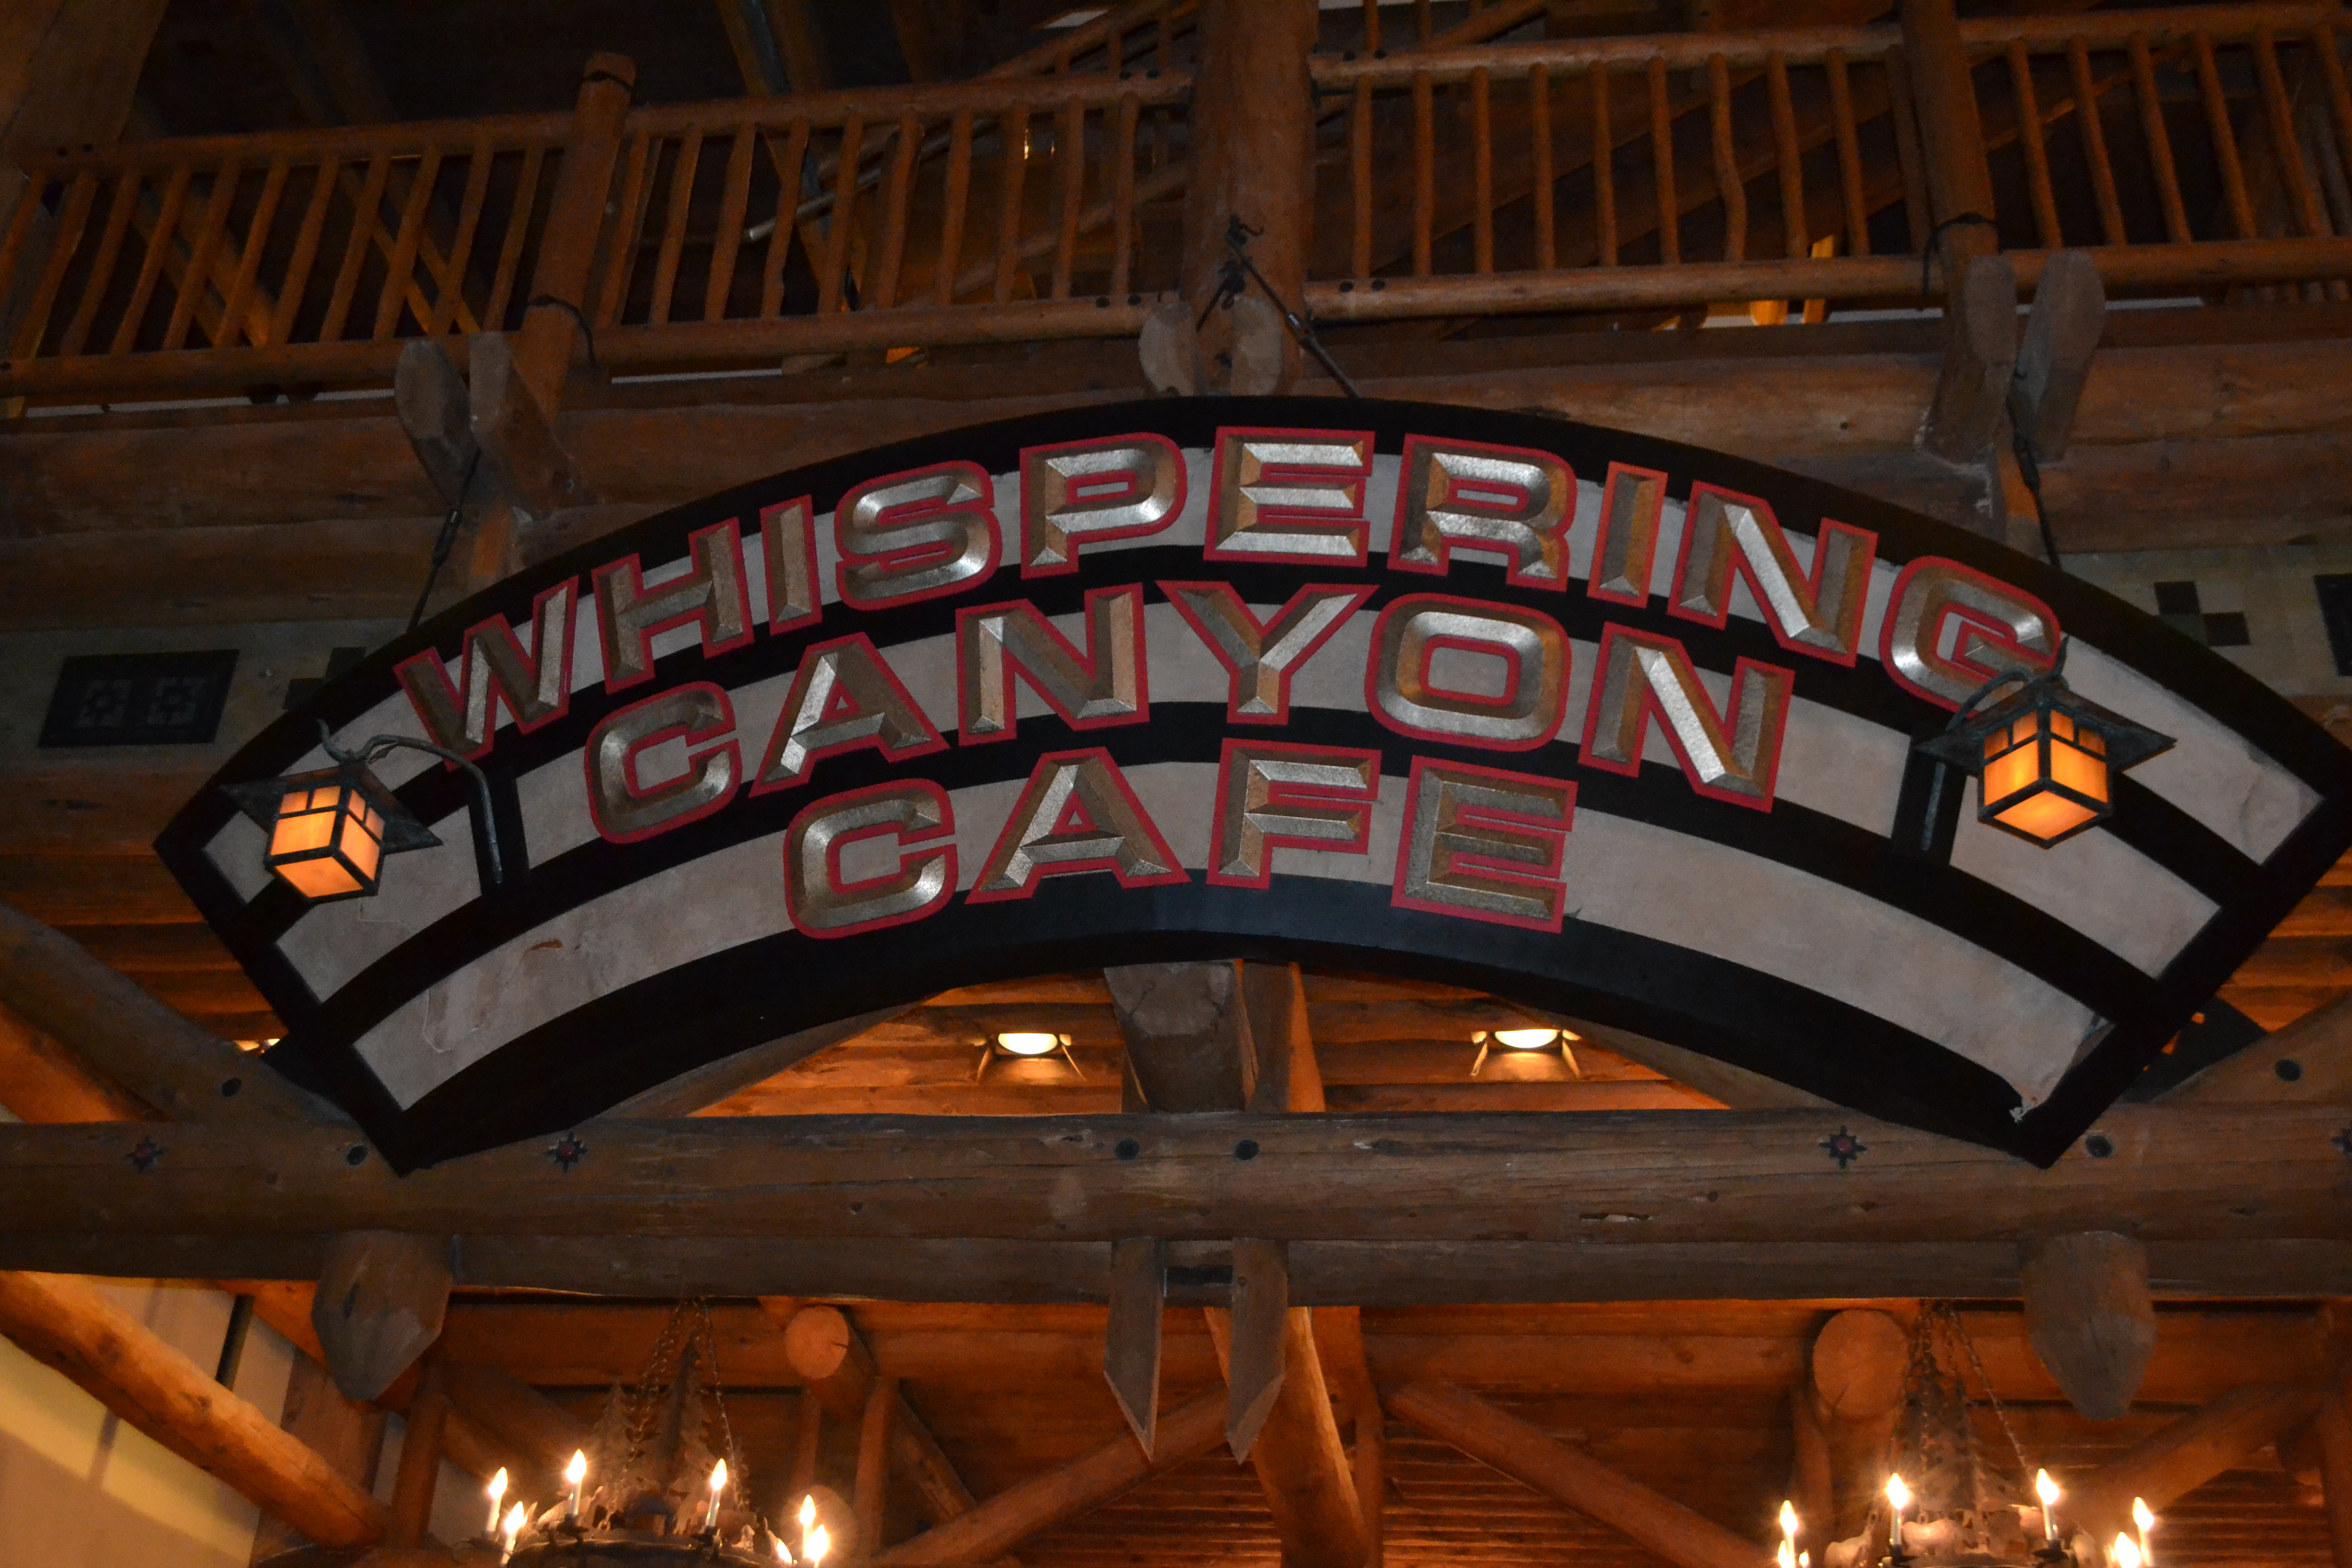 Whispering Canyon Café Dinner Review